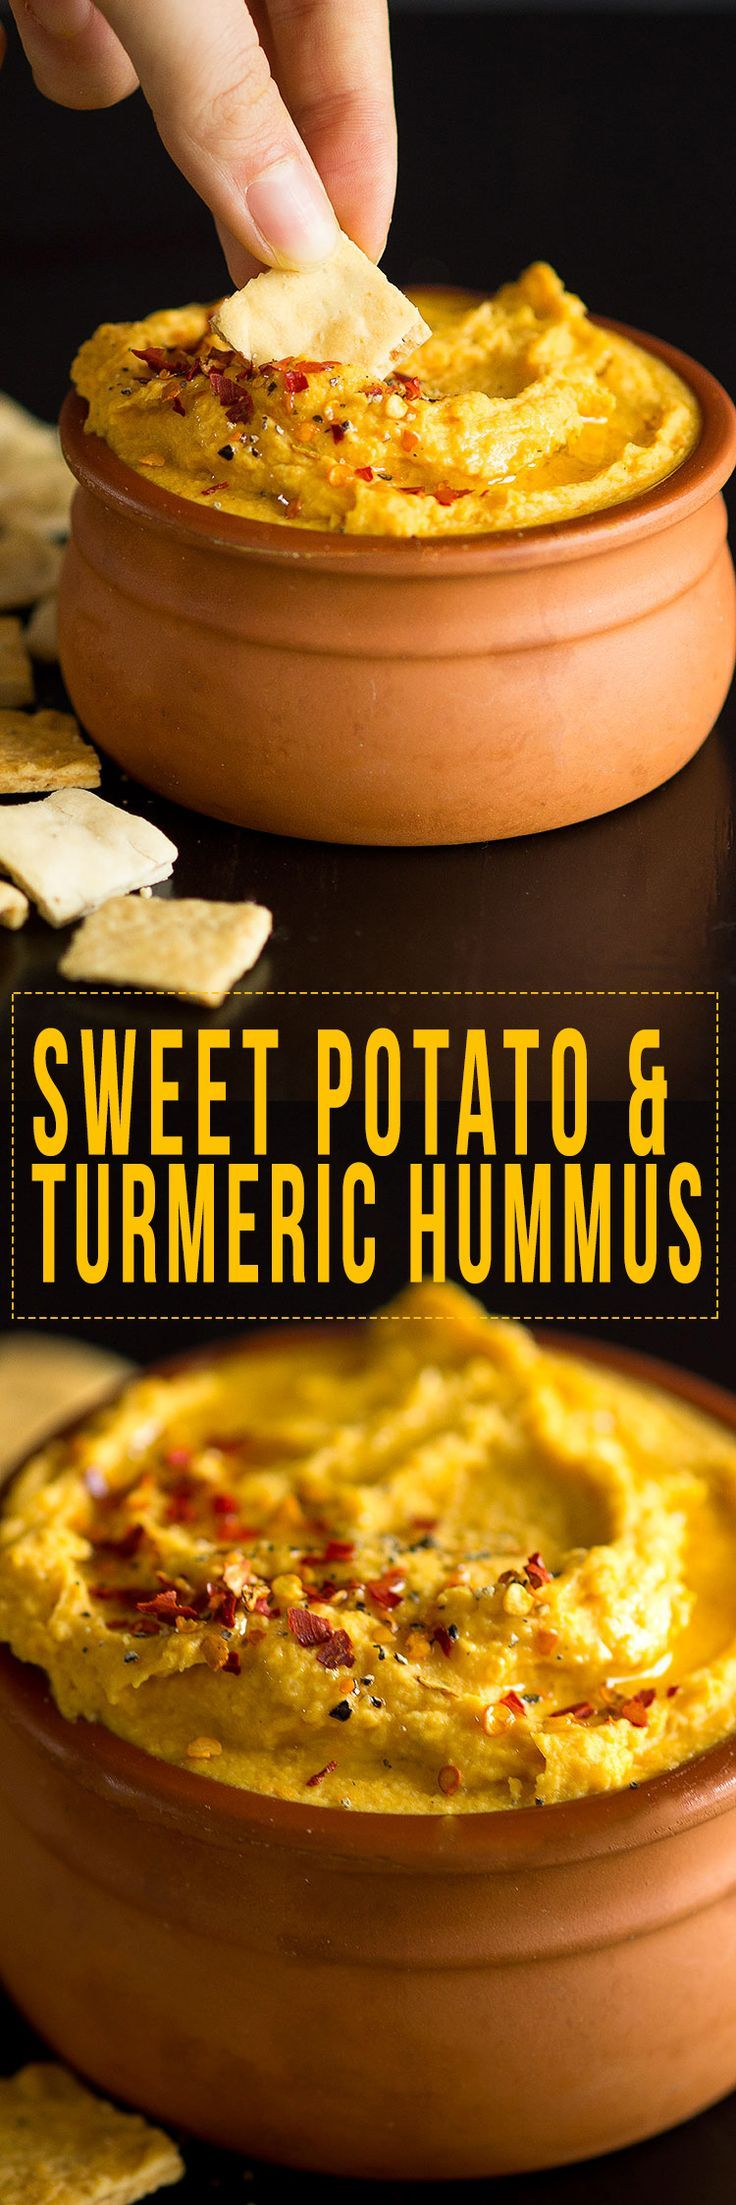 Dreamy Creamy Turmeric Sweet Potato Dip | Baked sweet potato with cannelini beans, tahini, garlic and spices to make the most delicious creamy dip